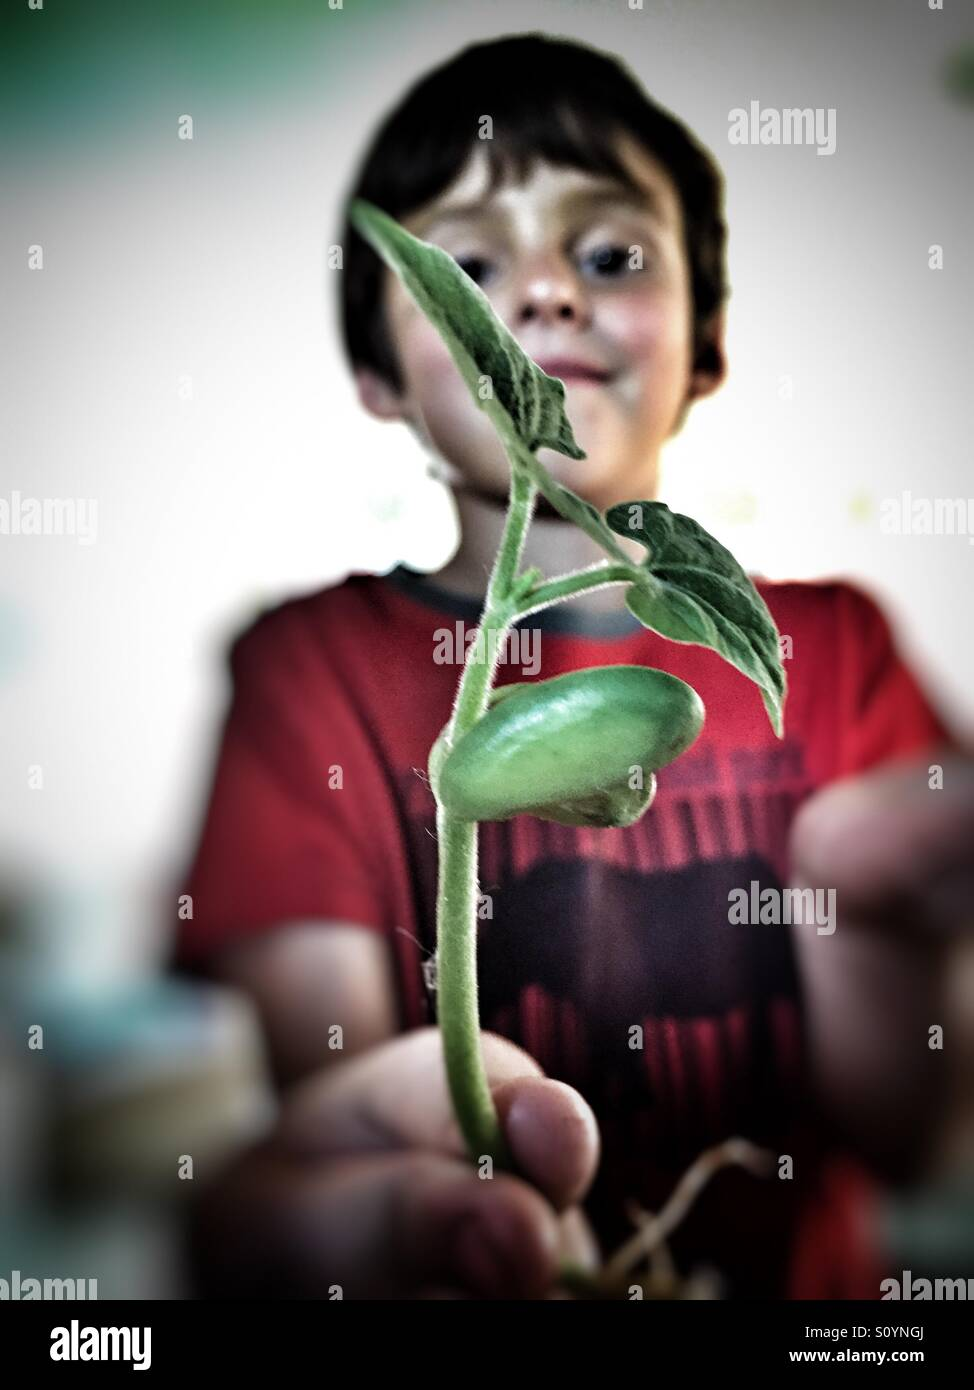 Young boy about to plant bean sprouts - Stock Image